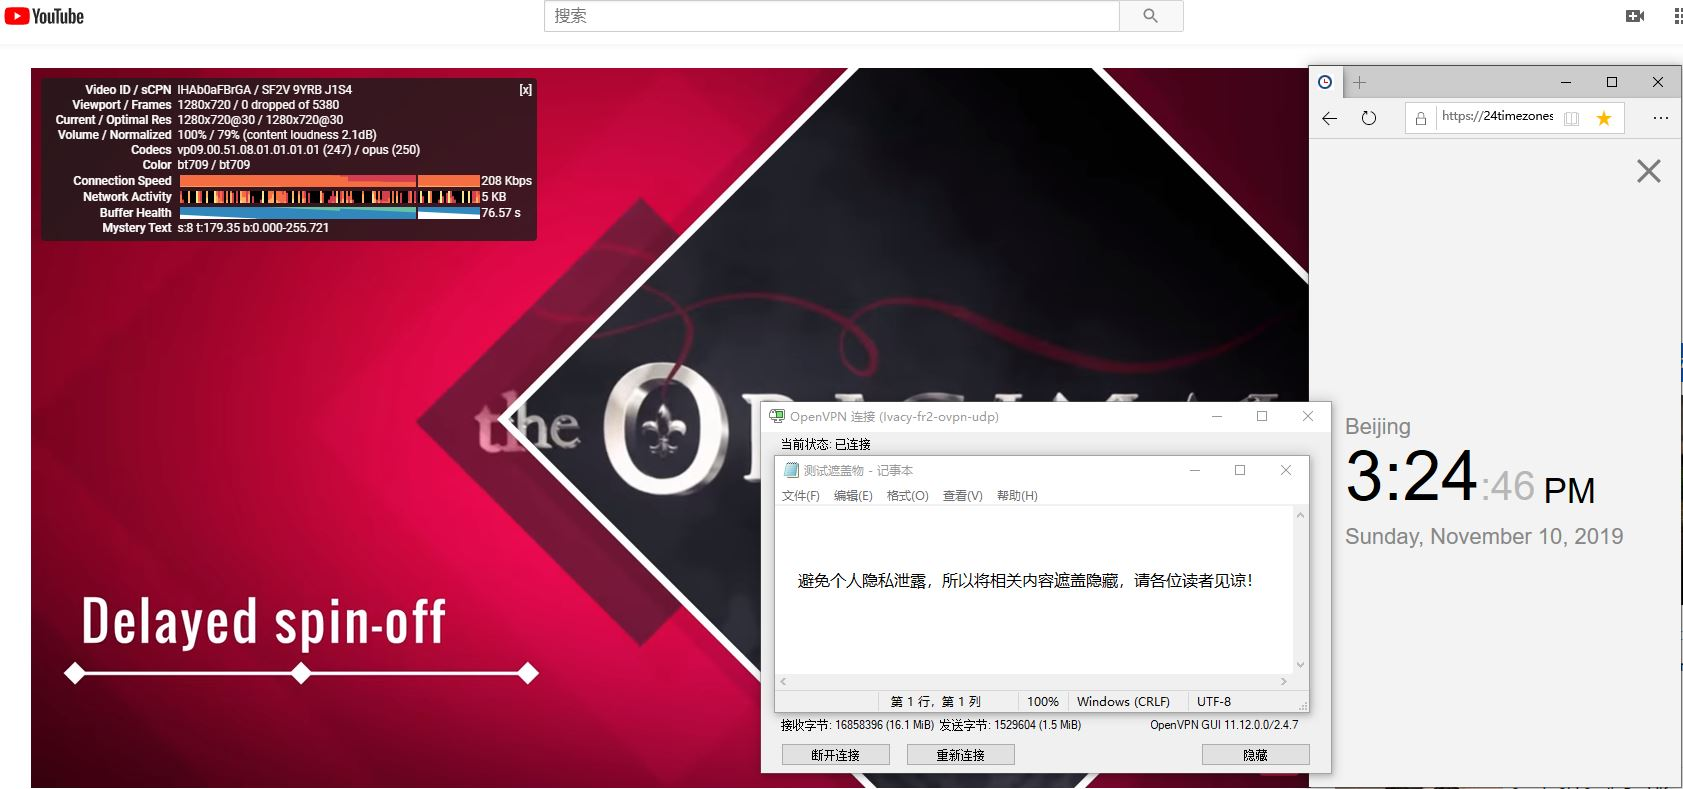 Windows IvacyVPN FR-2 中国VPN翻墙 科学上网 Youtube测速 - 20191110